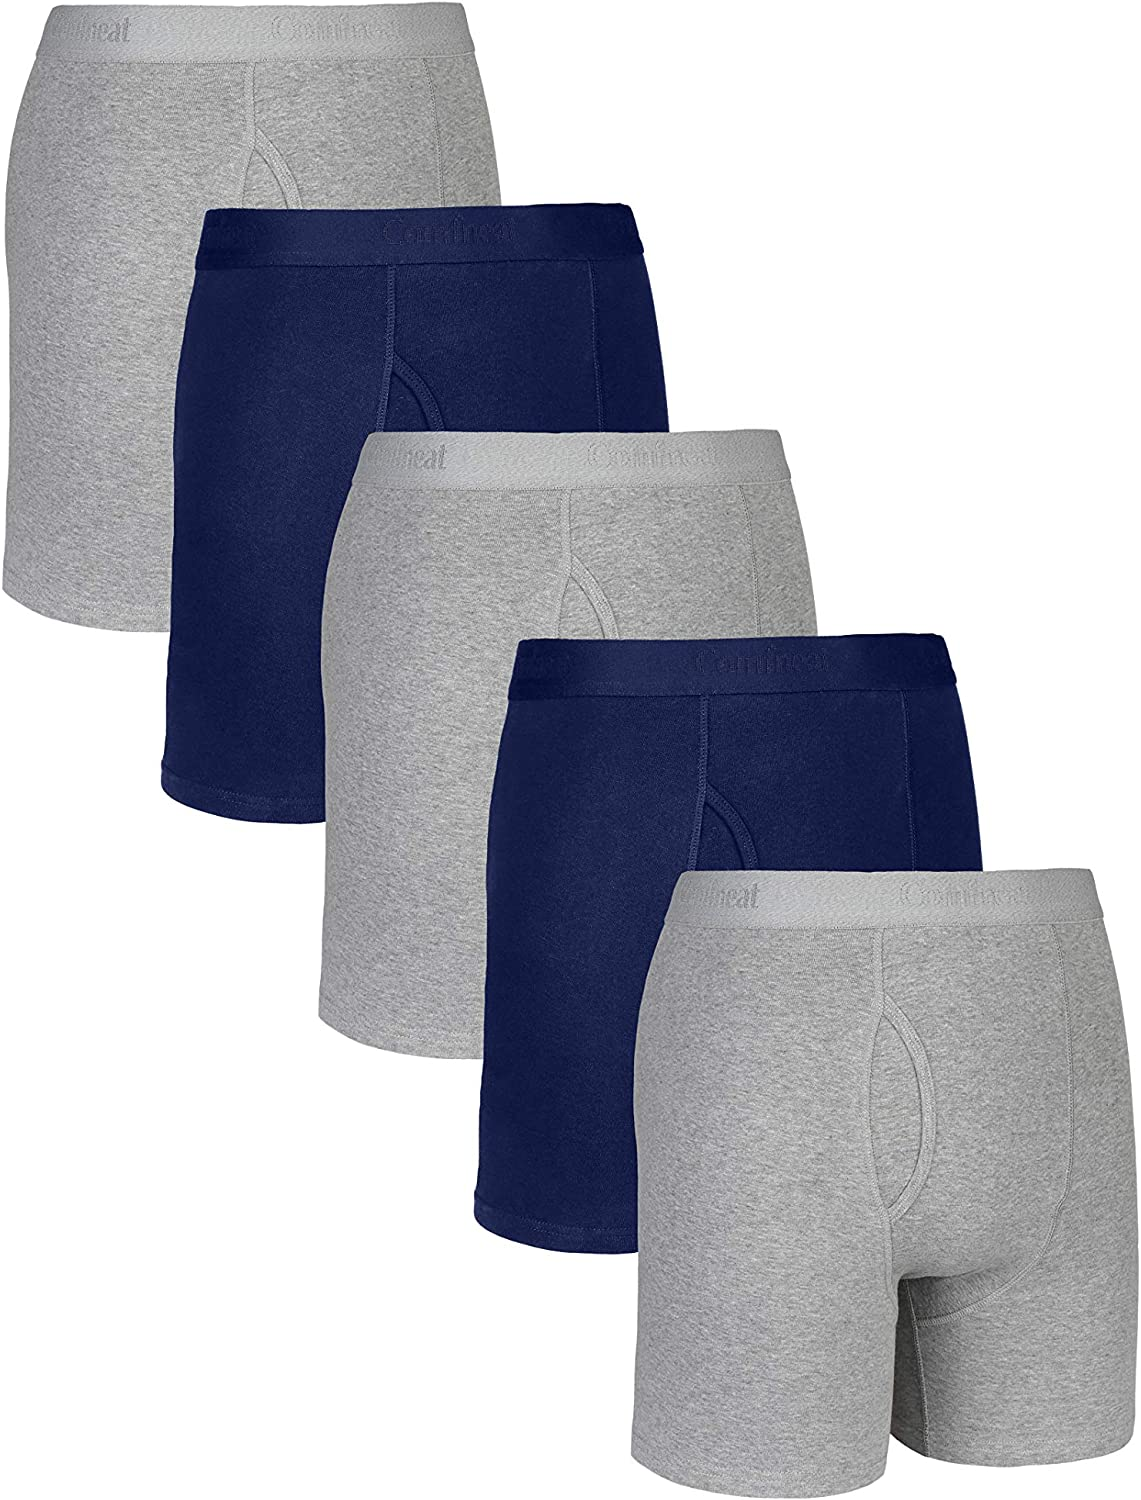 Comfneat Mens Comfy Boxer Brief 5 or 7-Pack Tagless Underwear Soft Stretchy Cotton Spandex